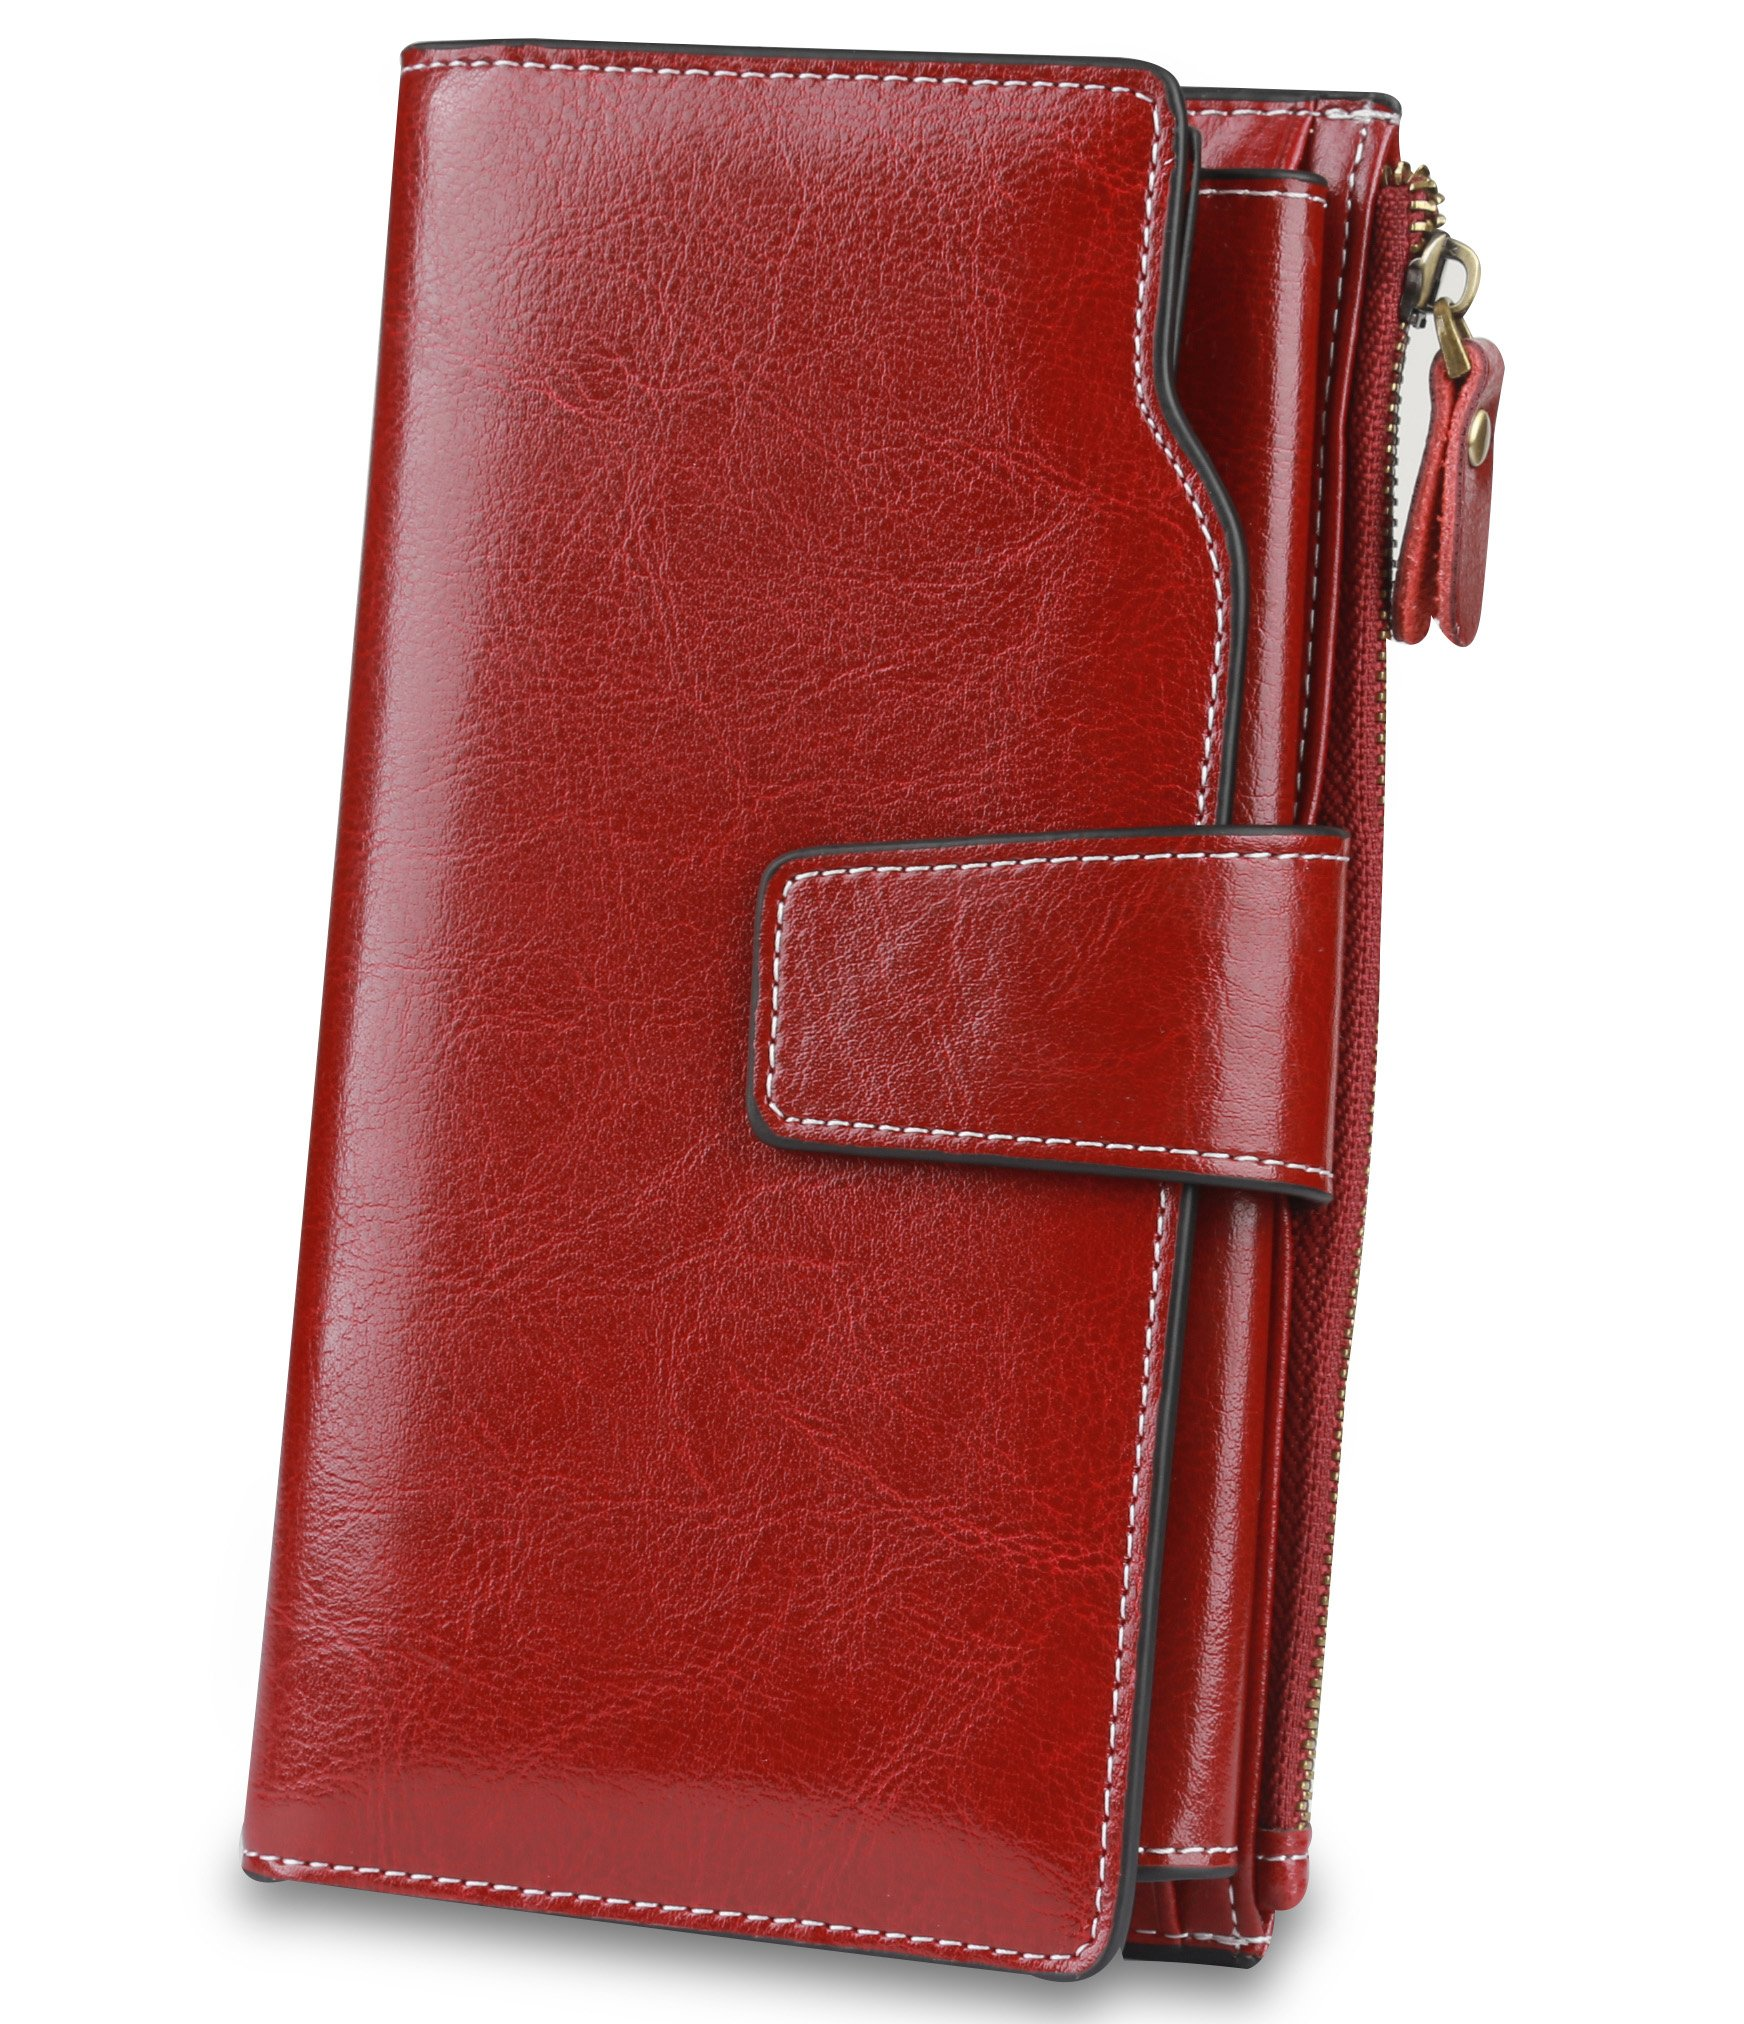 Women's Trifold Genuine Leather Wallet RFID Blocking Large Capacity Organizer Clutch Luxury Ladies Purse Credit Card Holder Red